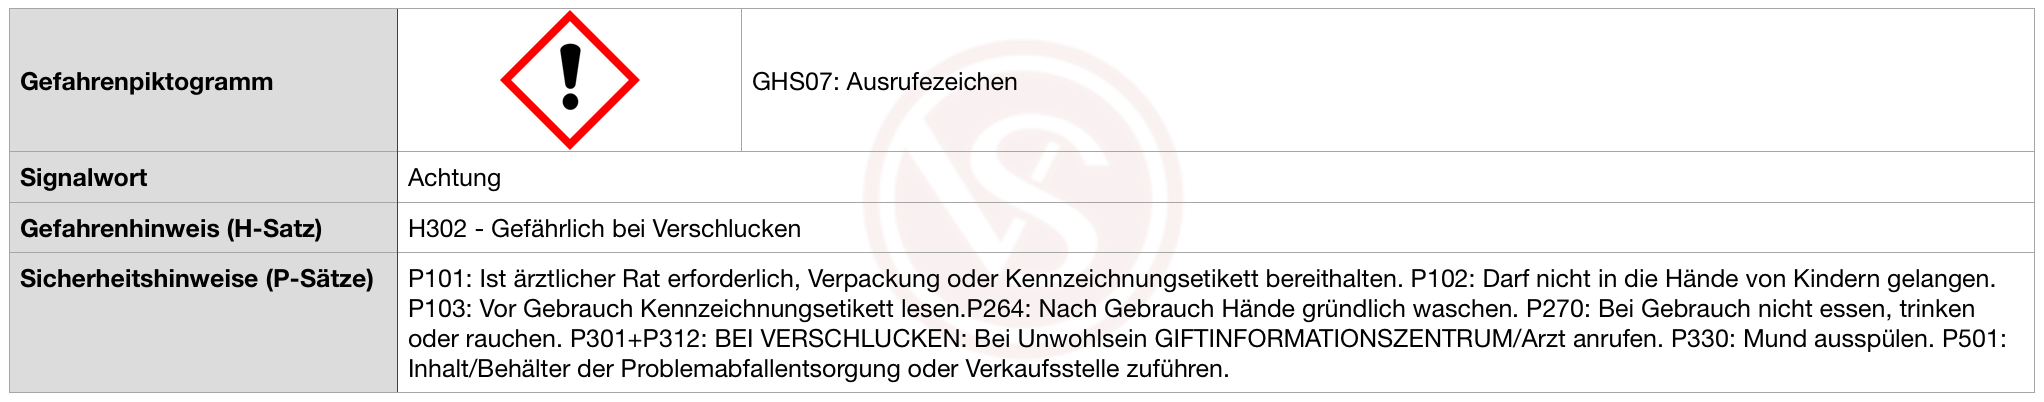 H302_GHF_Achtung